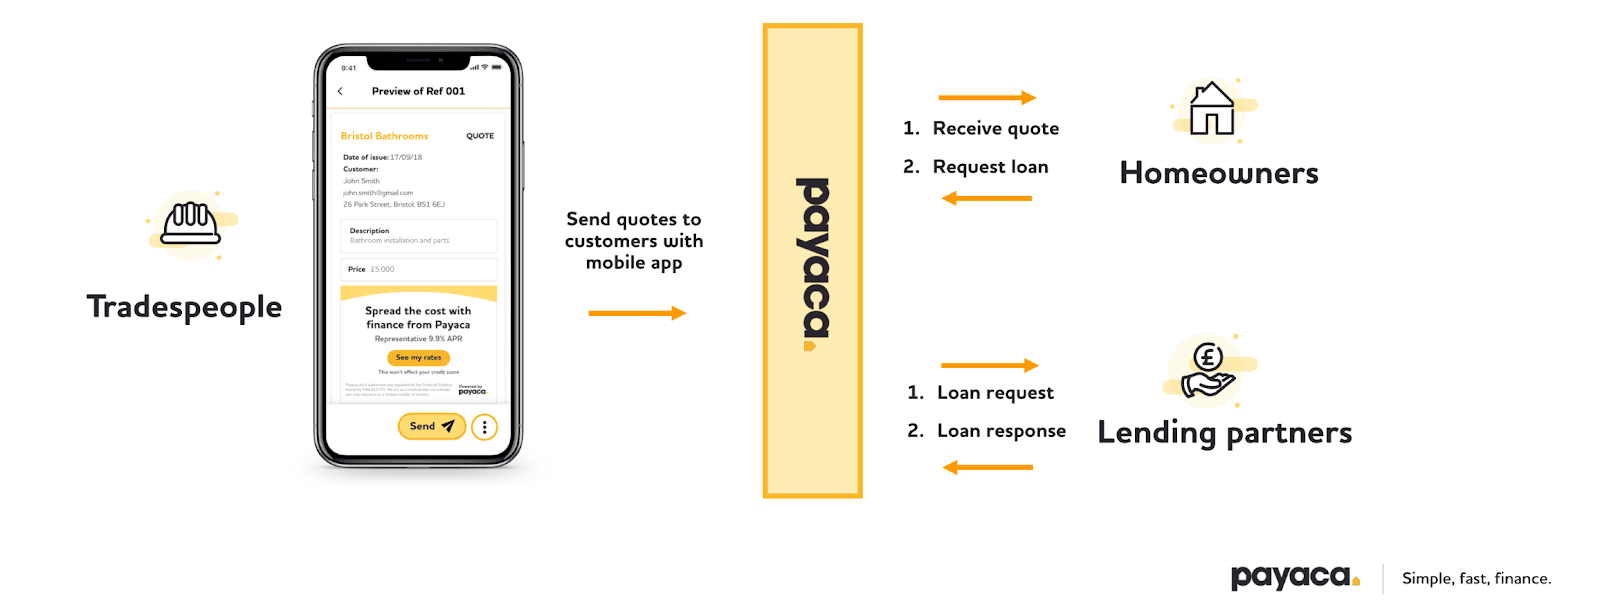 How to offer financing to your customers, via a click-through invoicing system like payaca